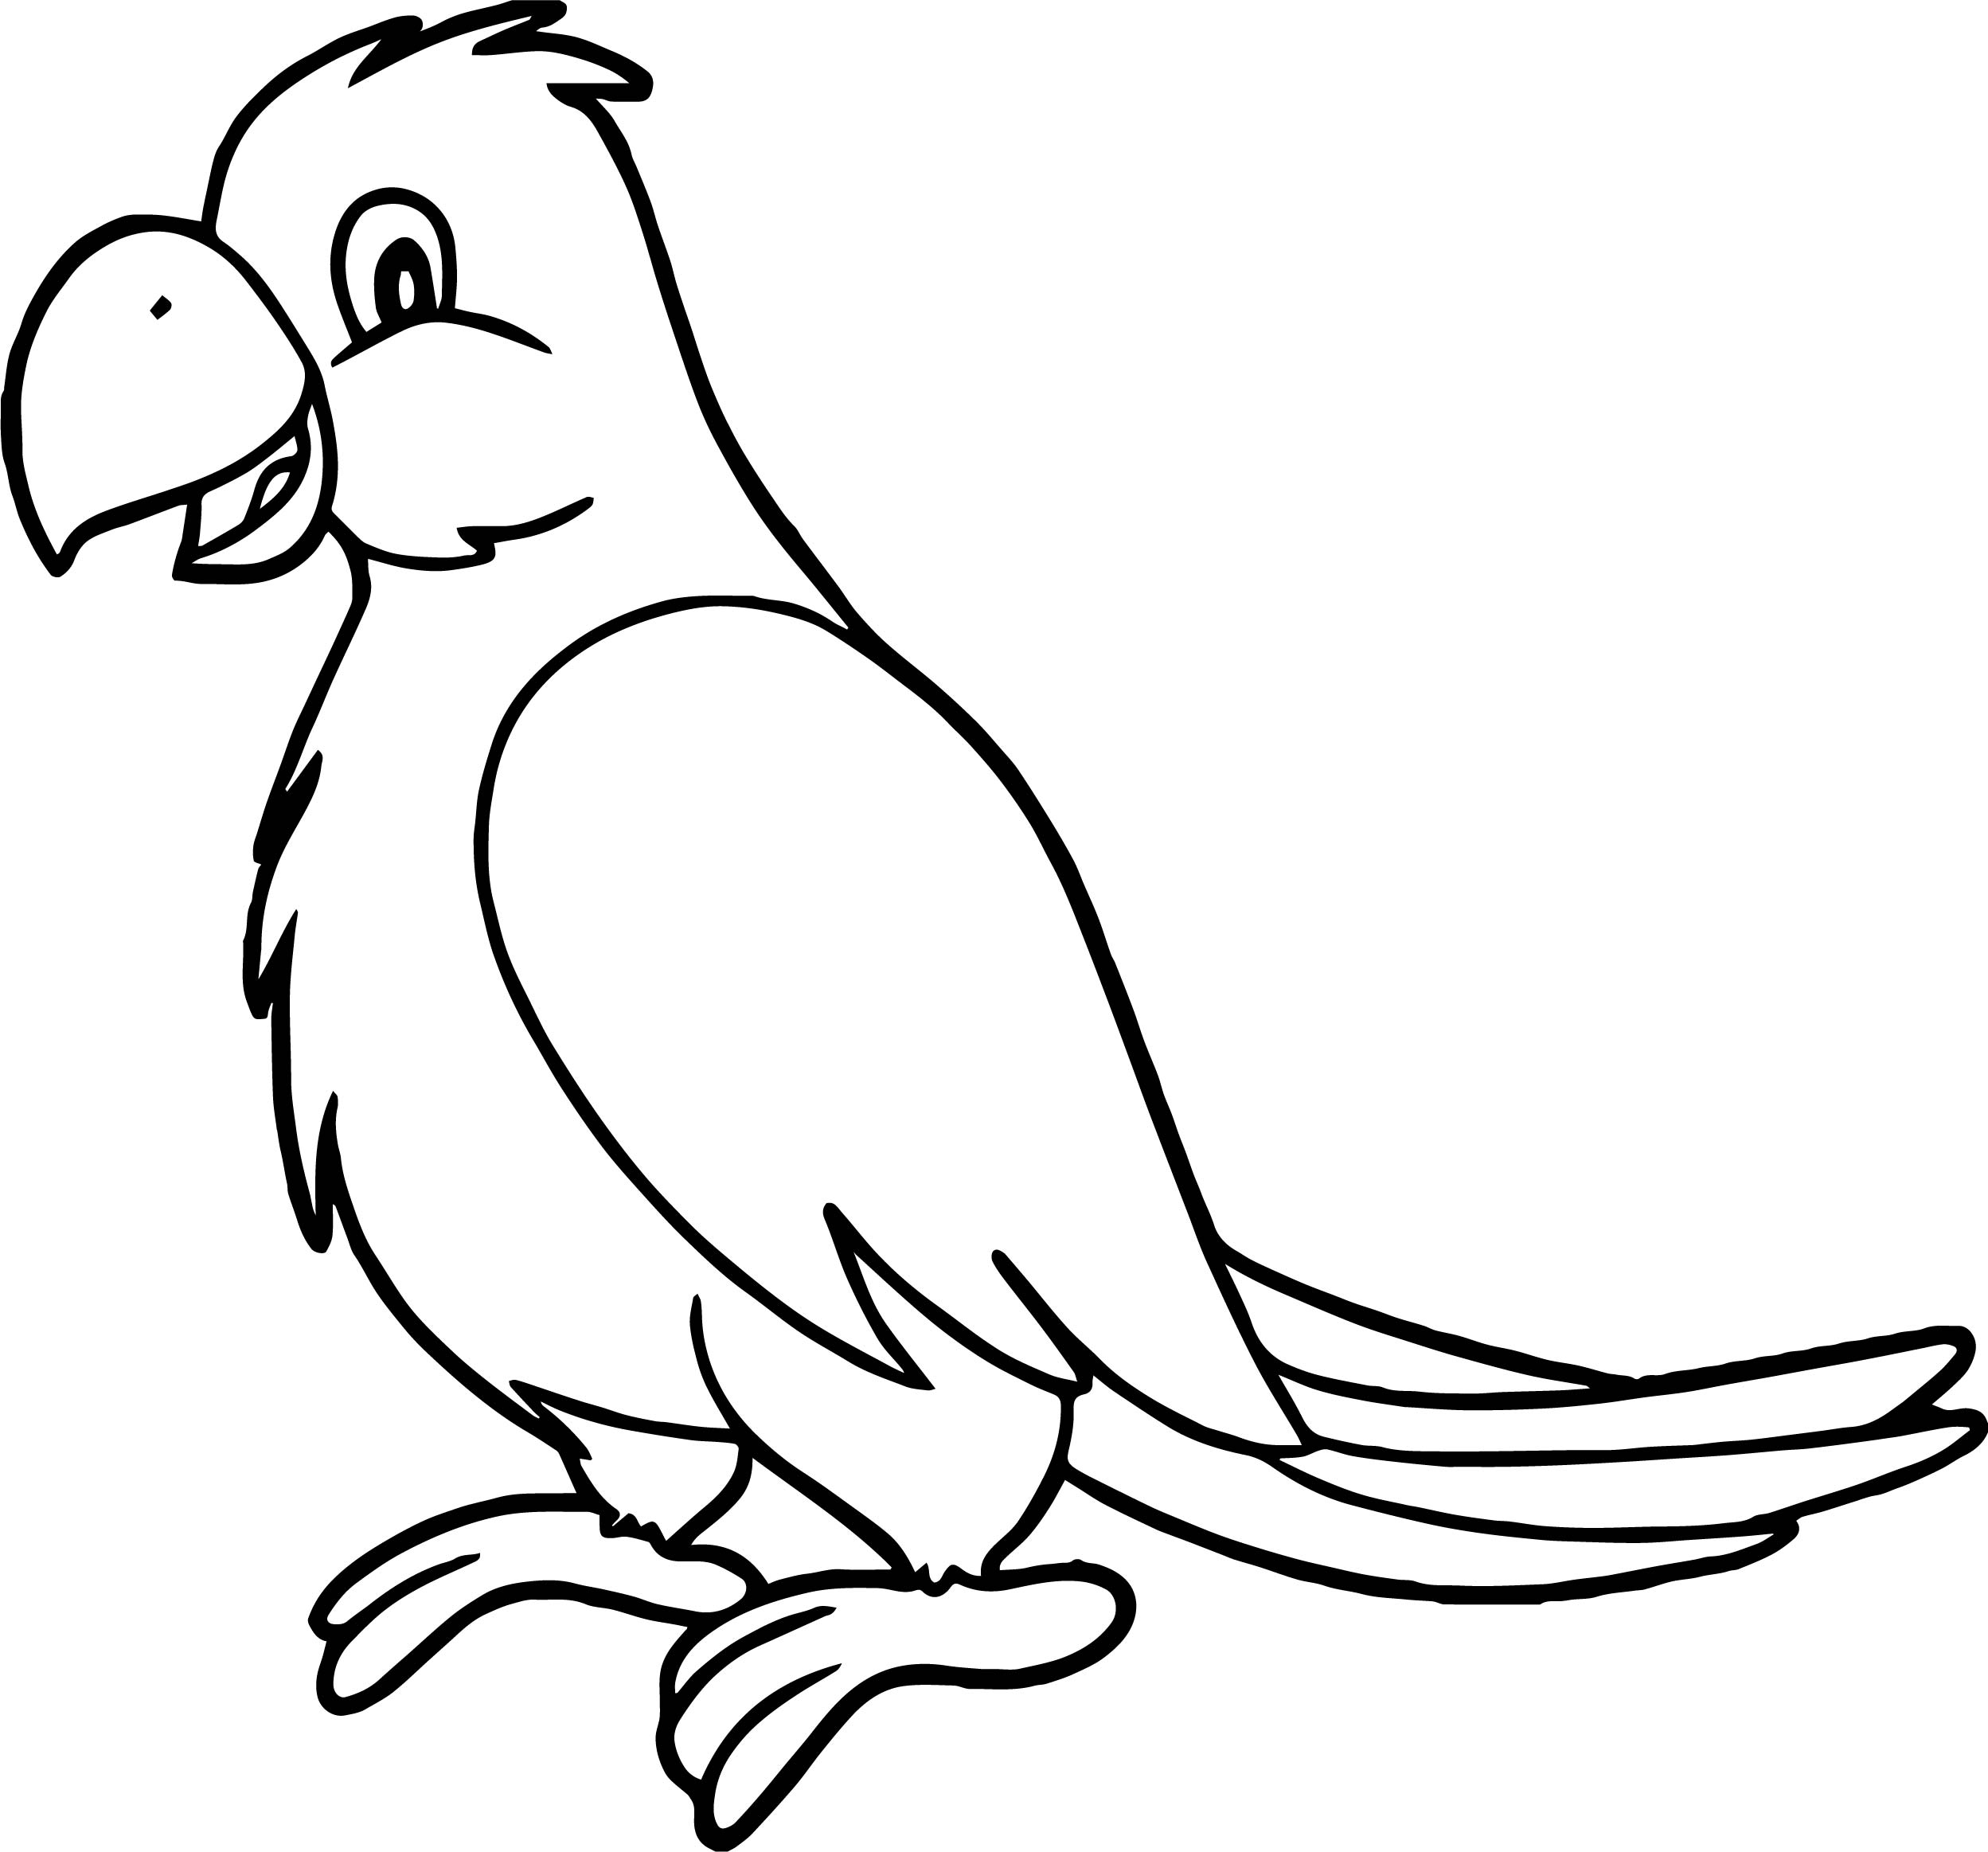 parrot coloring pages bird - photo#29